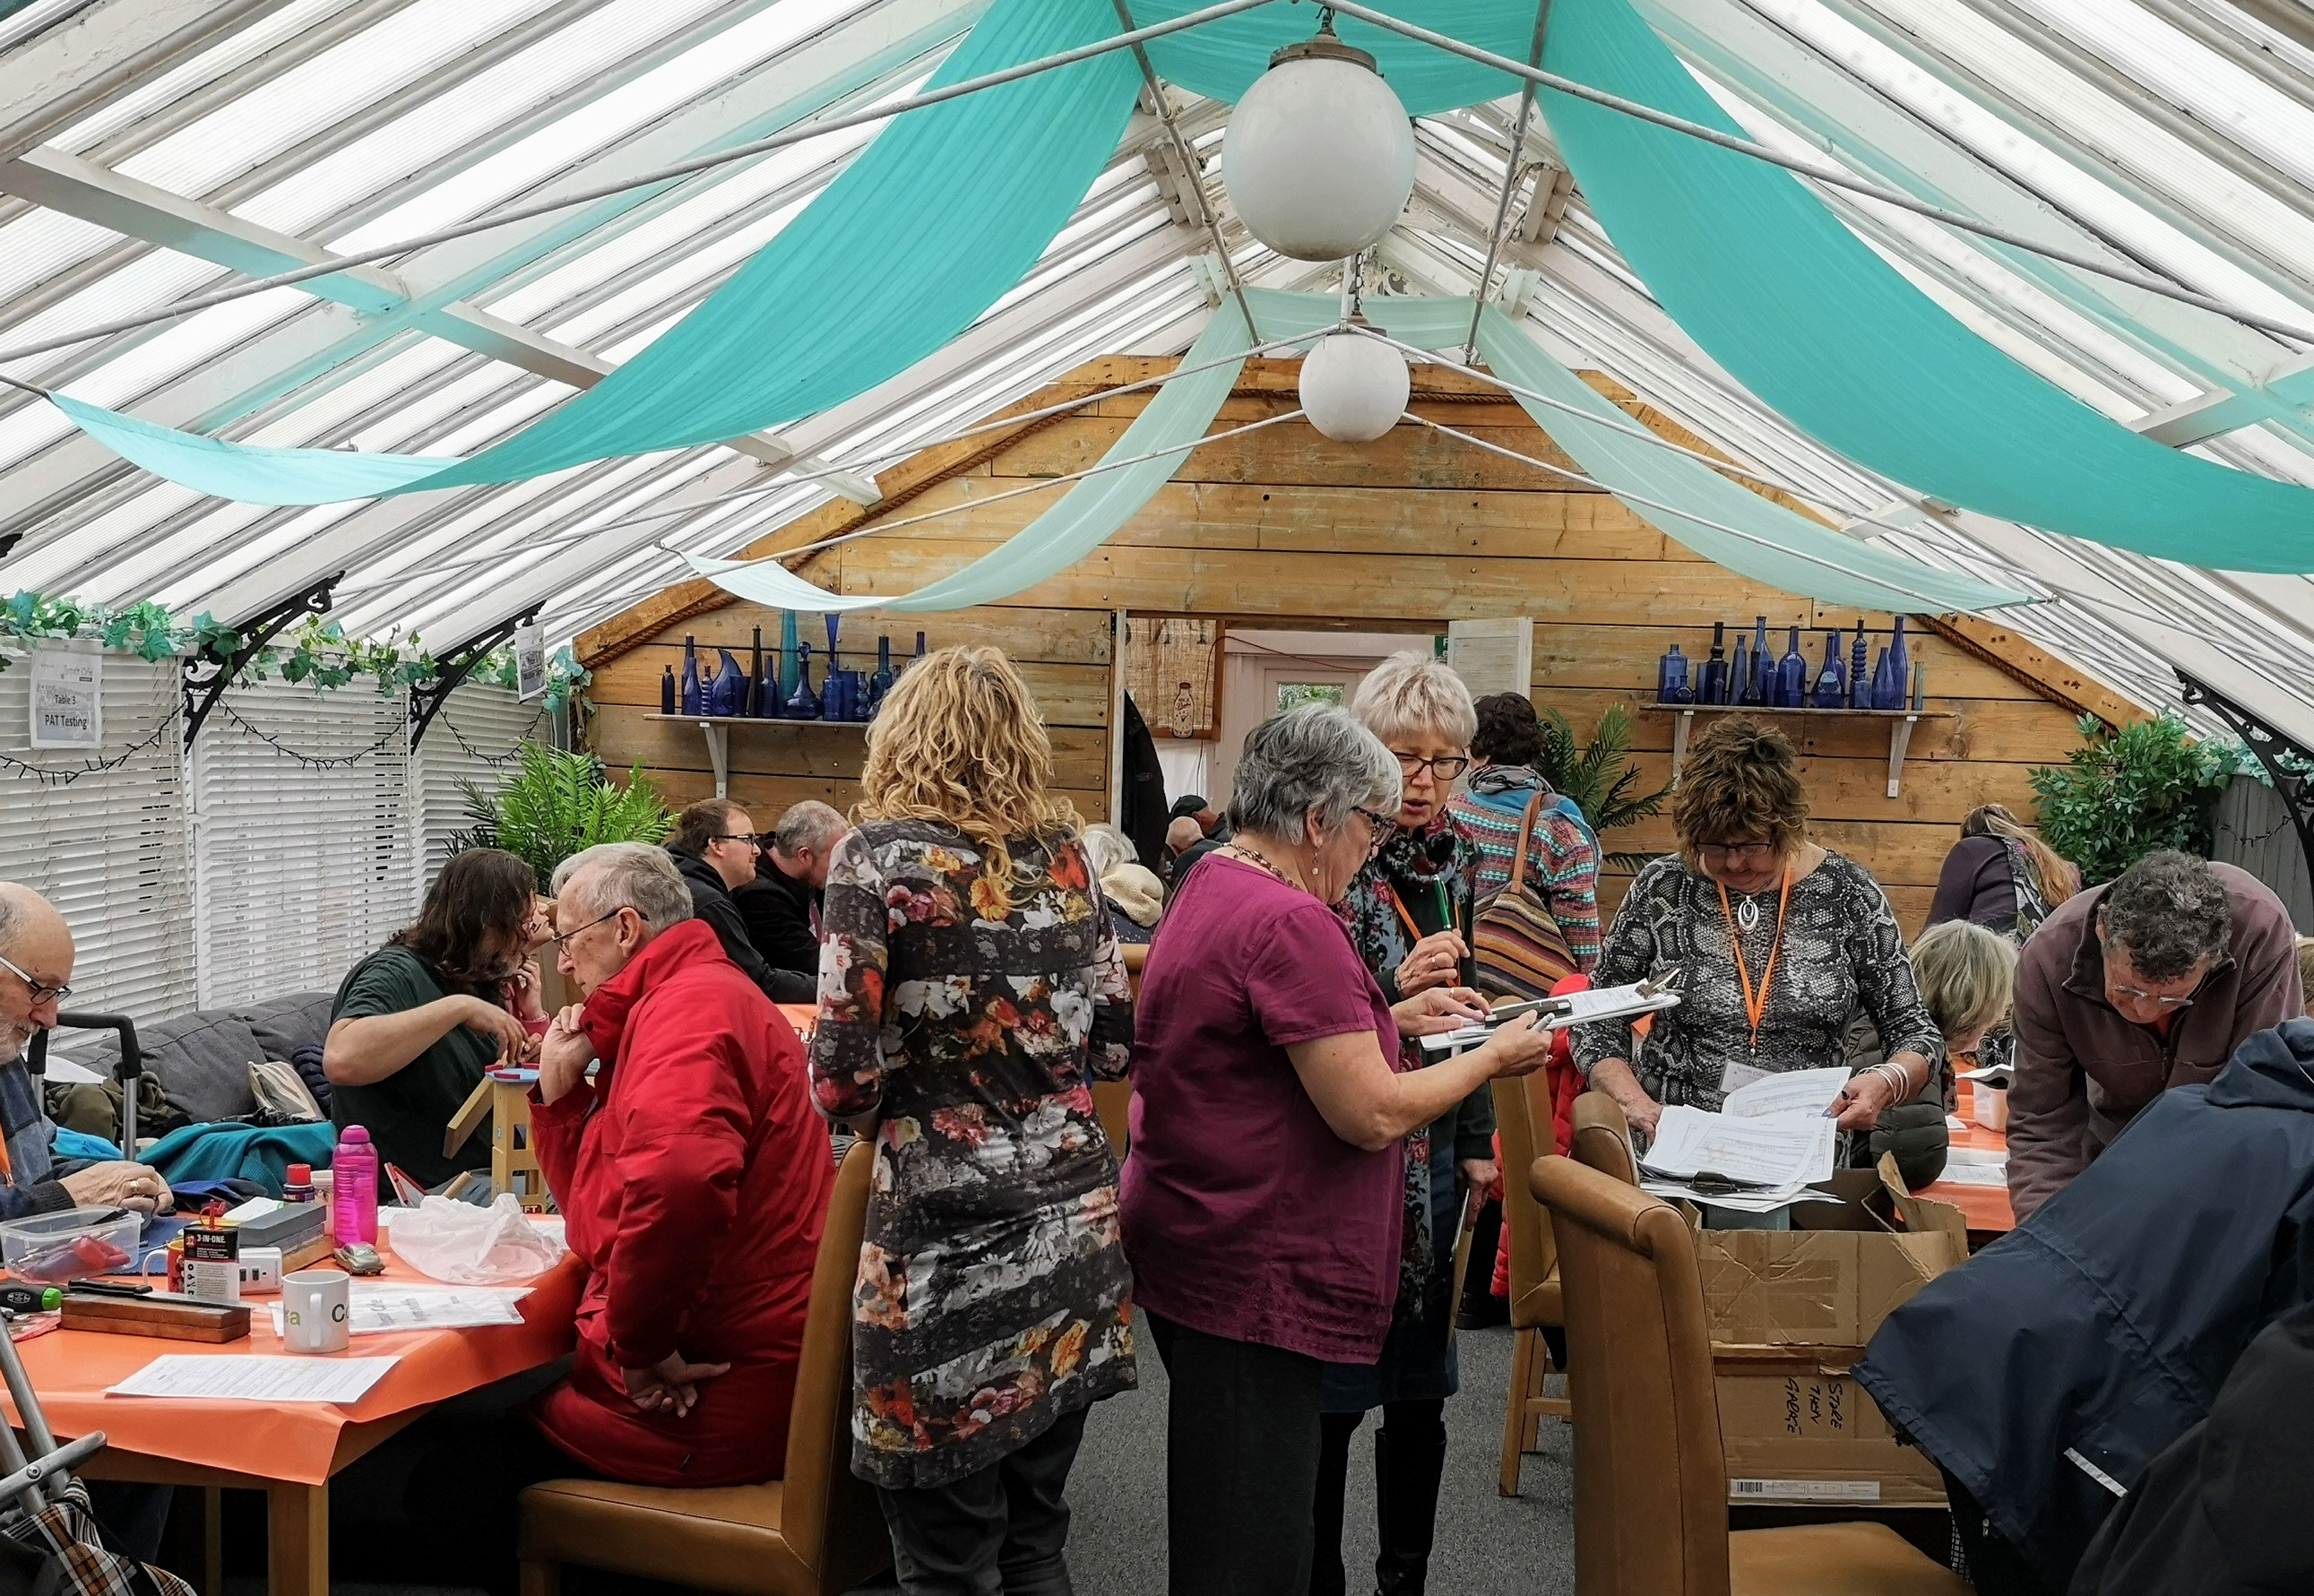 A busy day at repair cafe